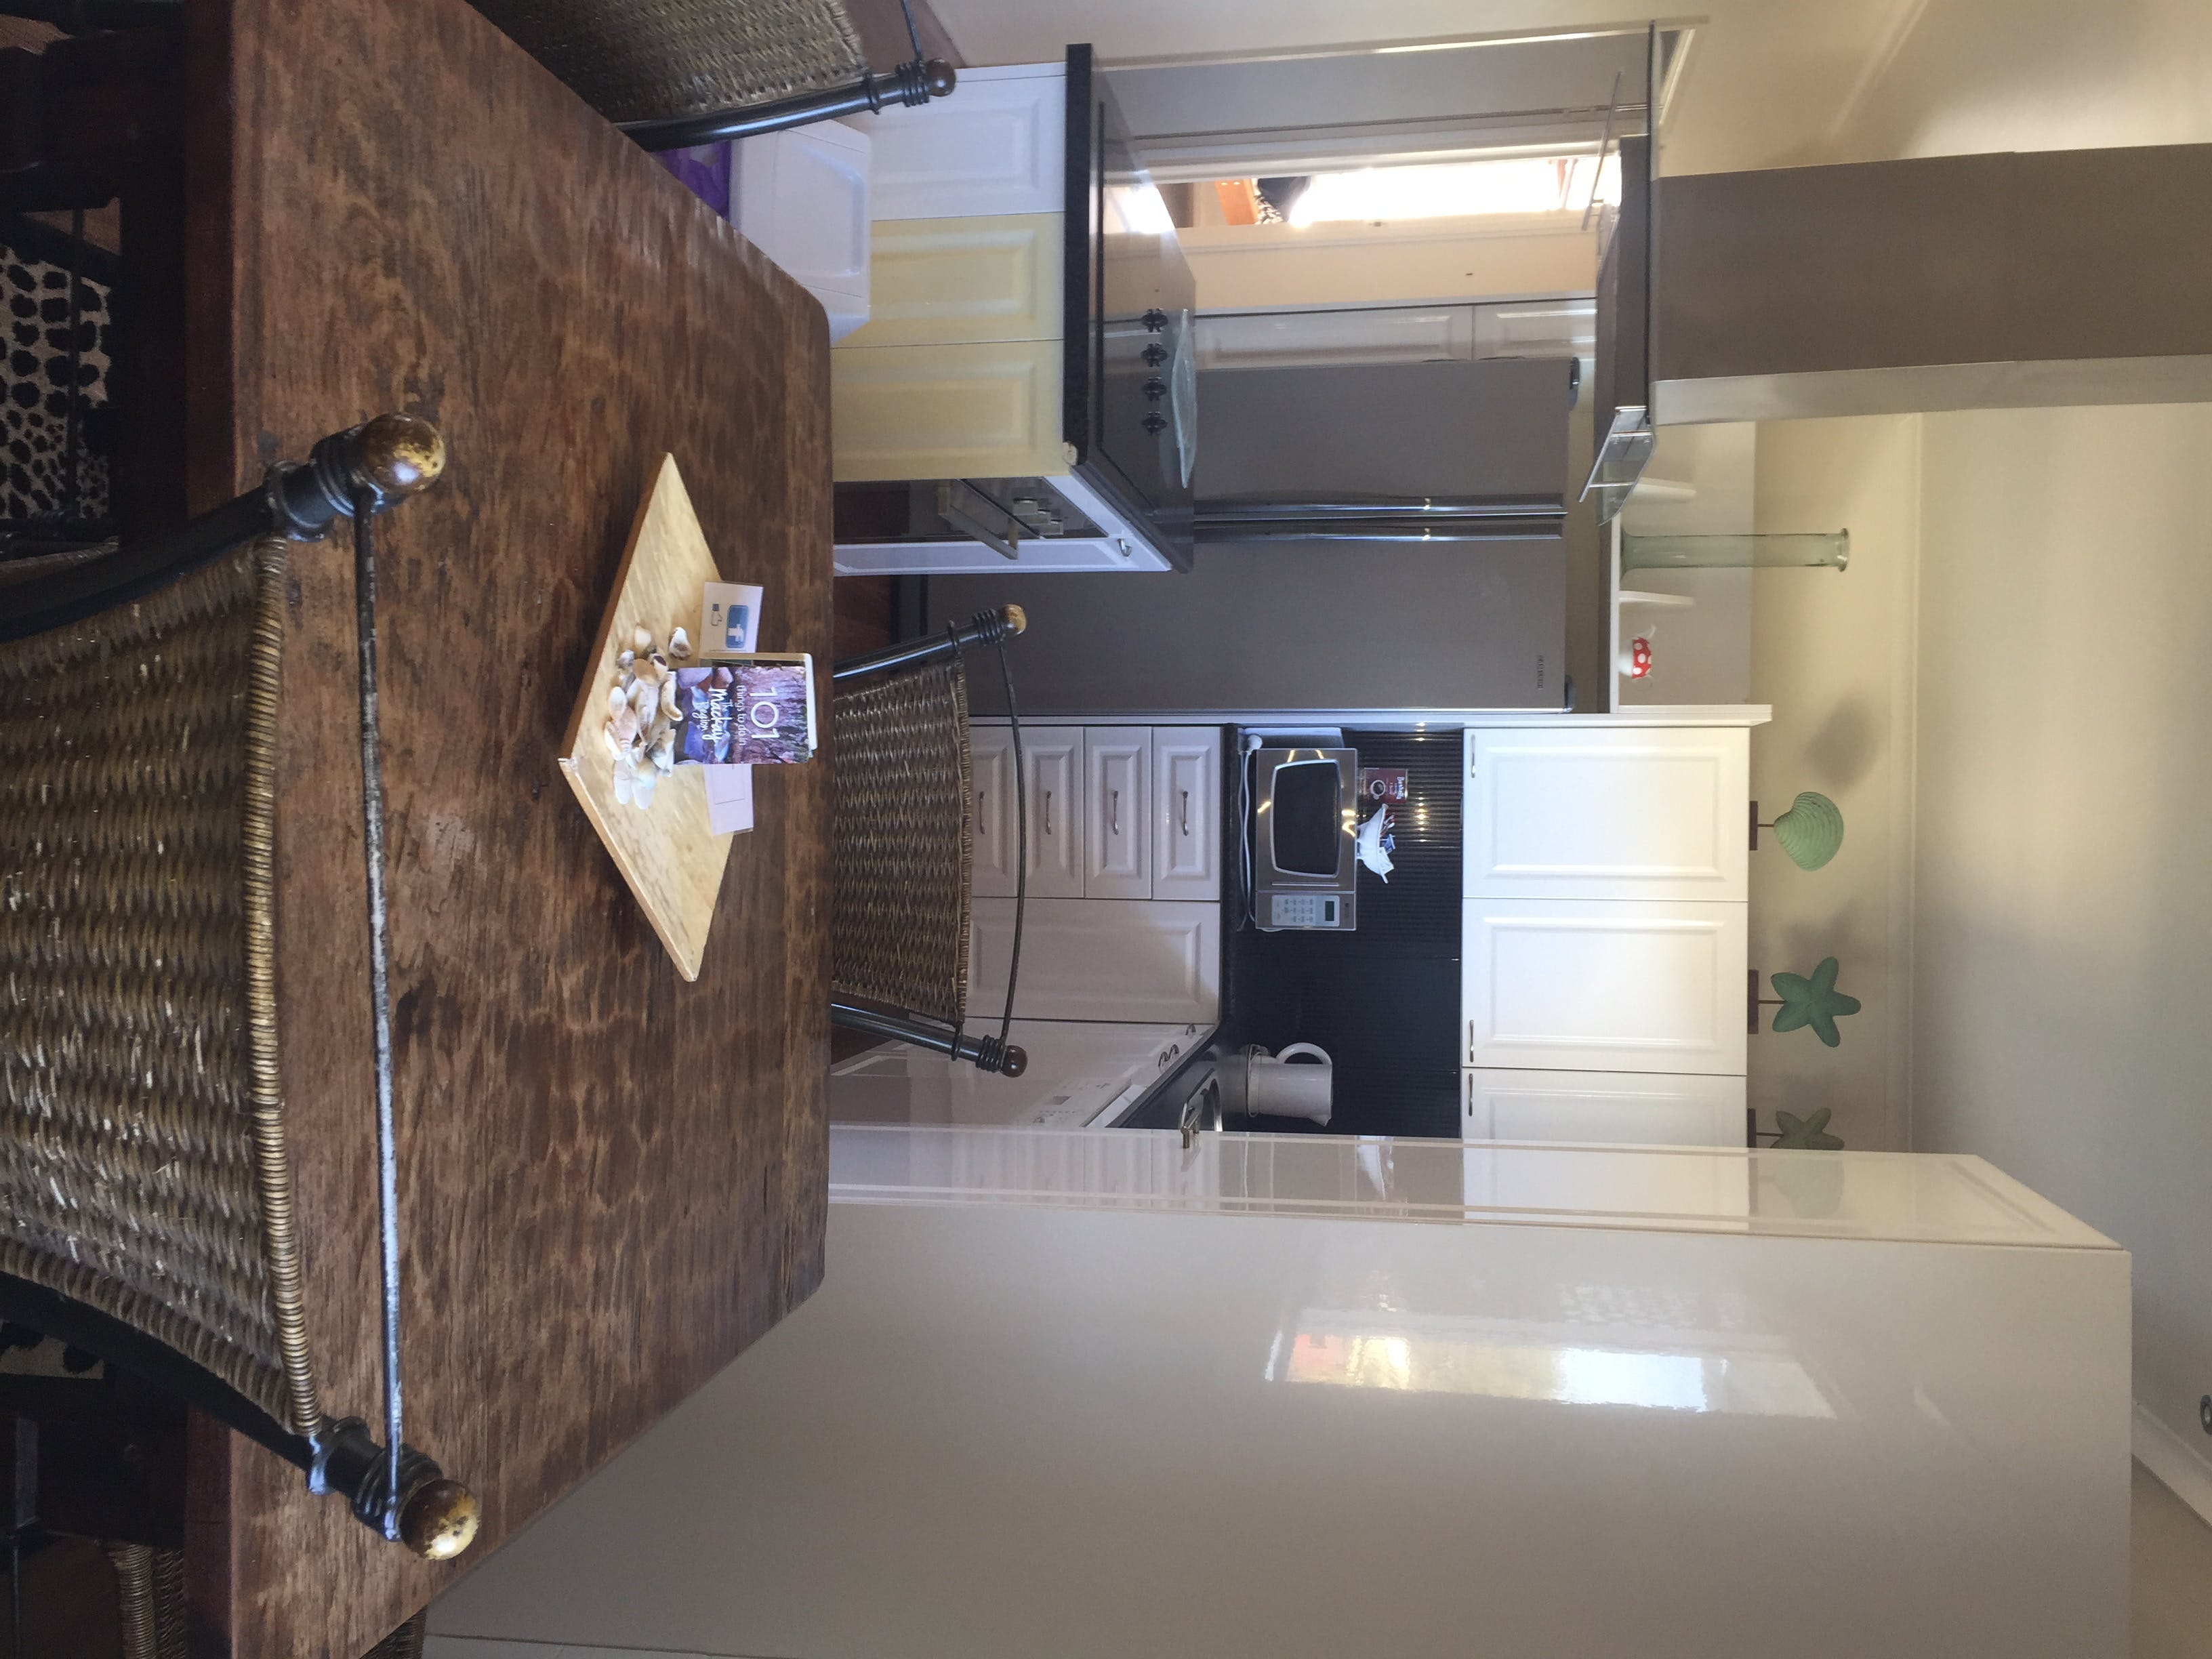 3 bedroom apartment kitchen/dining